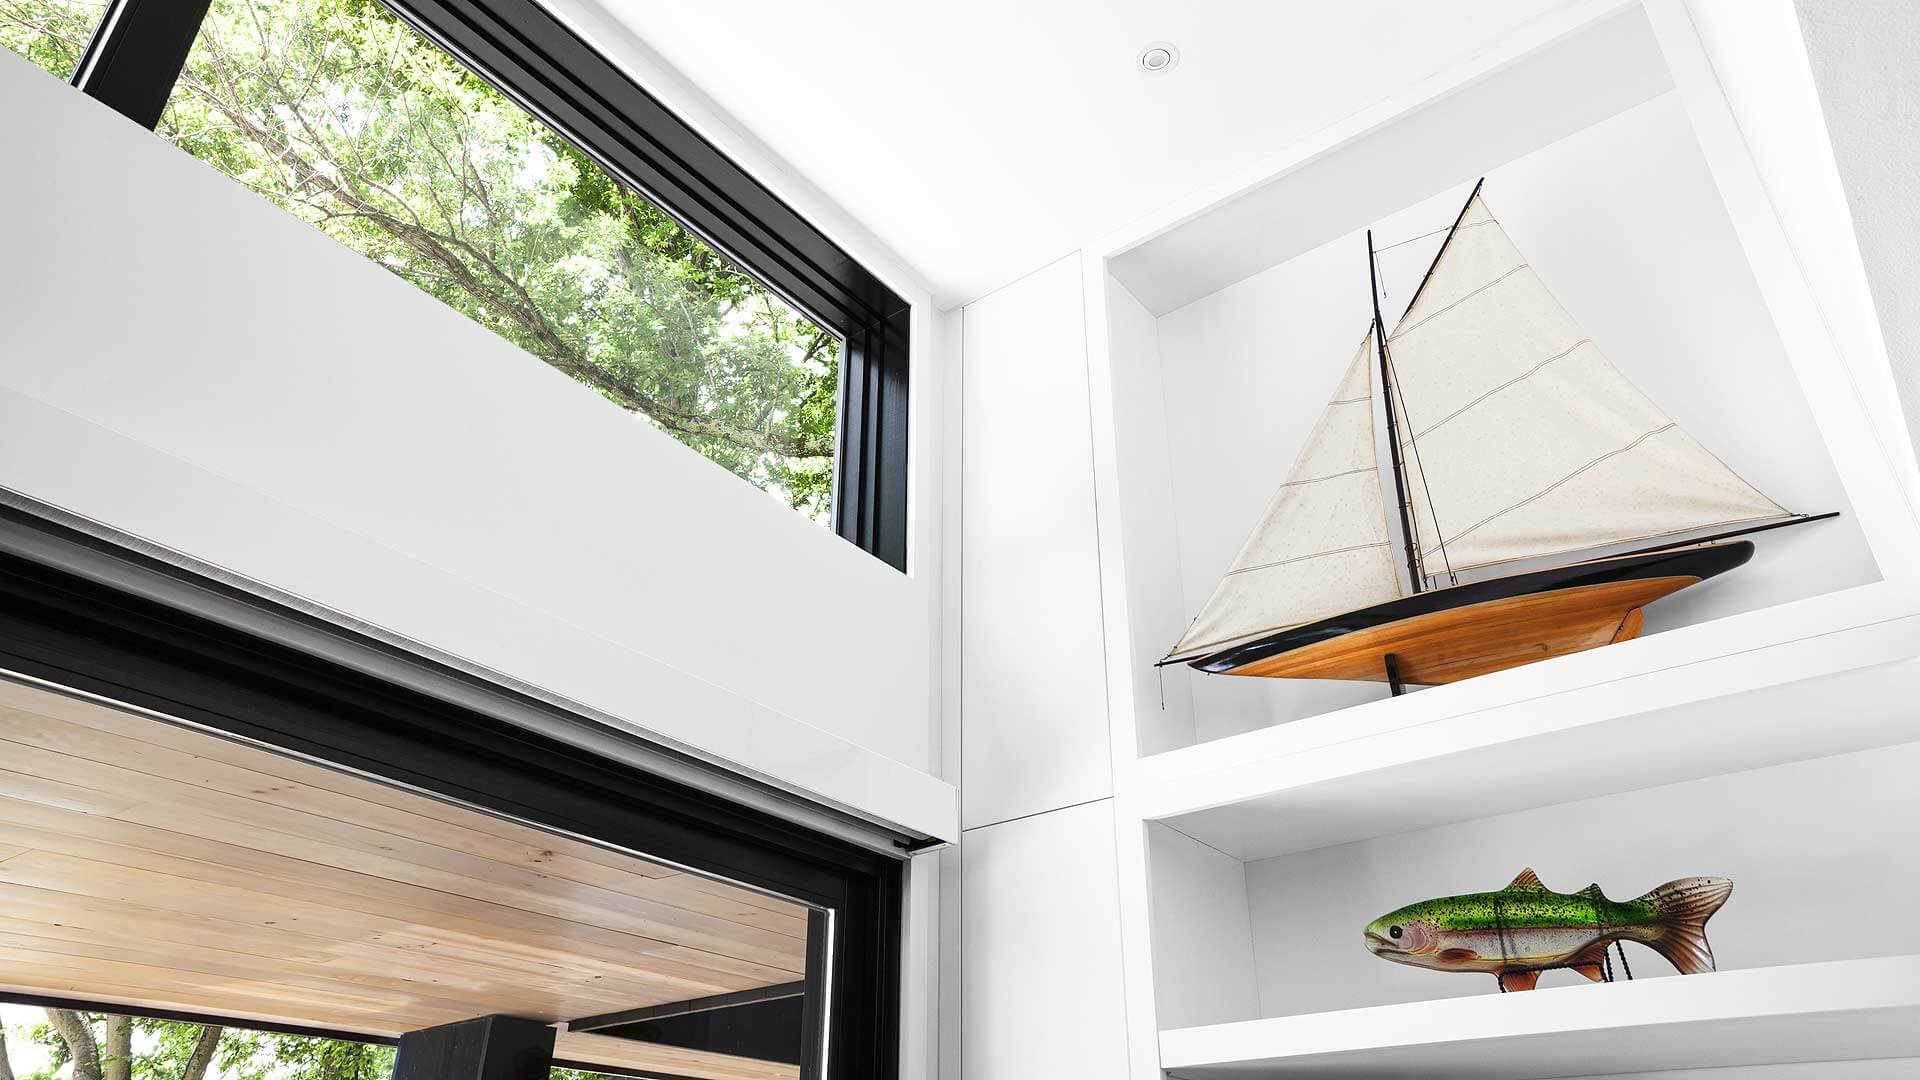 custom cabinet fills clerestory and provides display shelves for sailboat and fish - Lakeside Modern Cottage (H-LODGE) - Unionville, Indiana, Lake Lemon